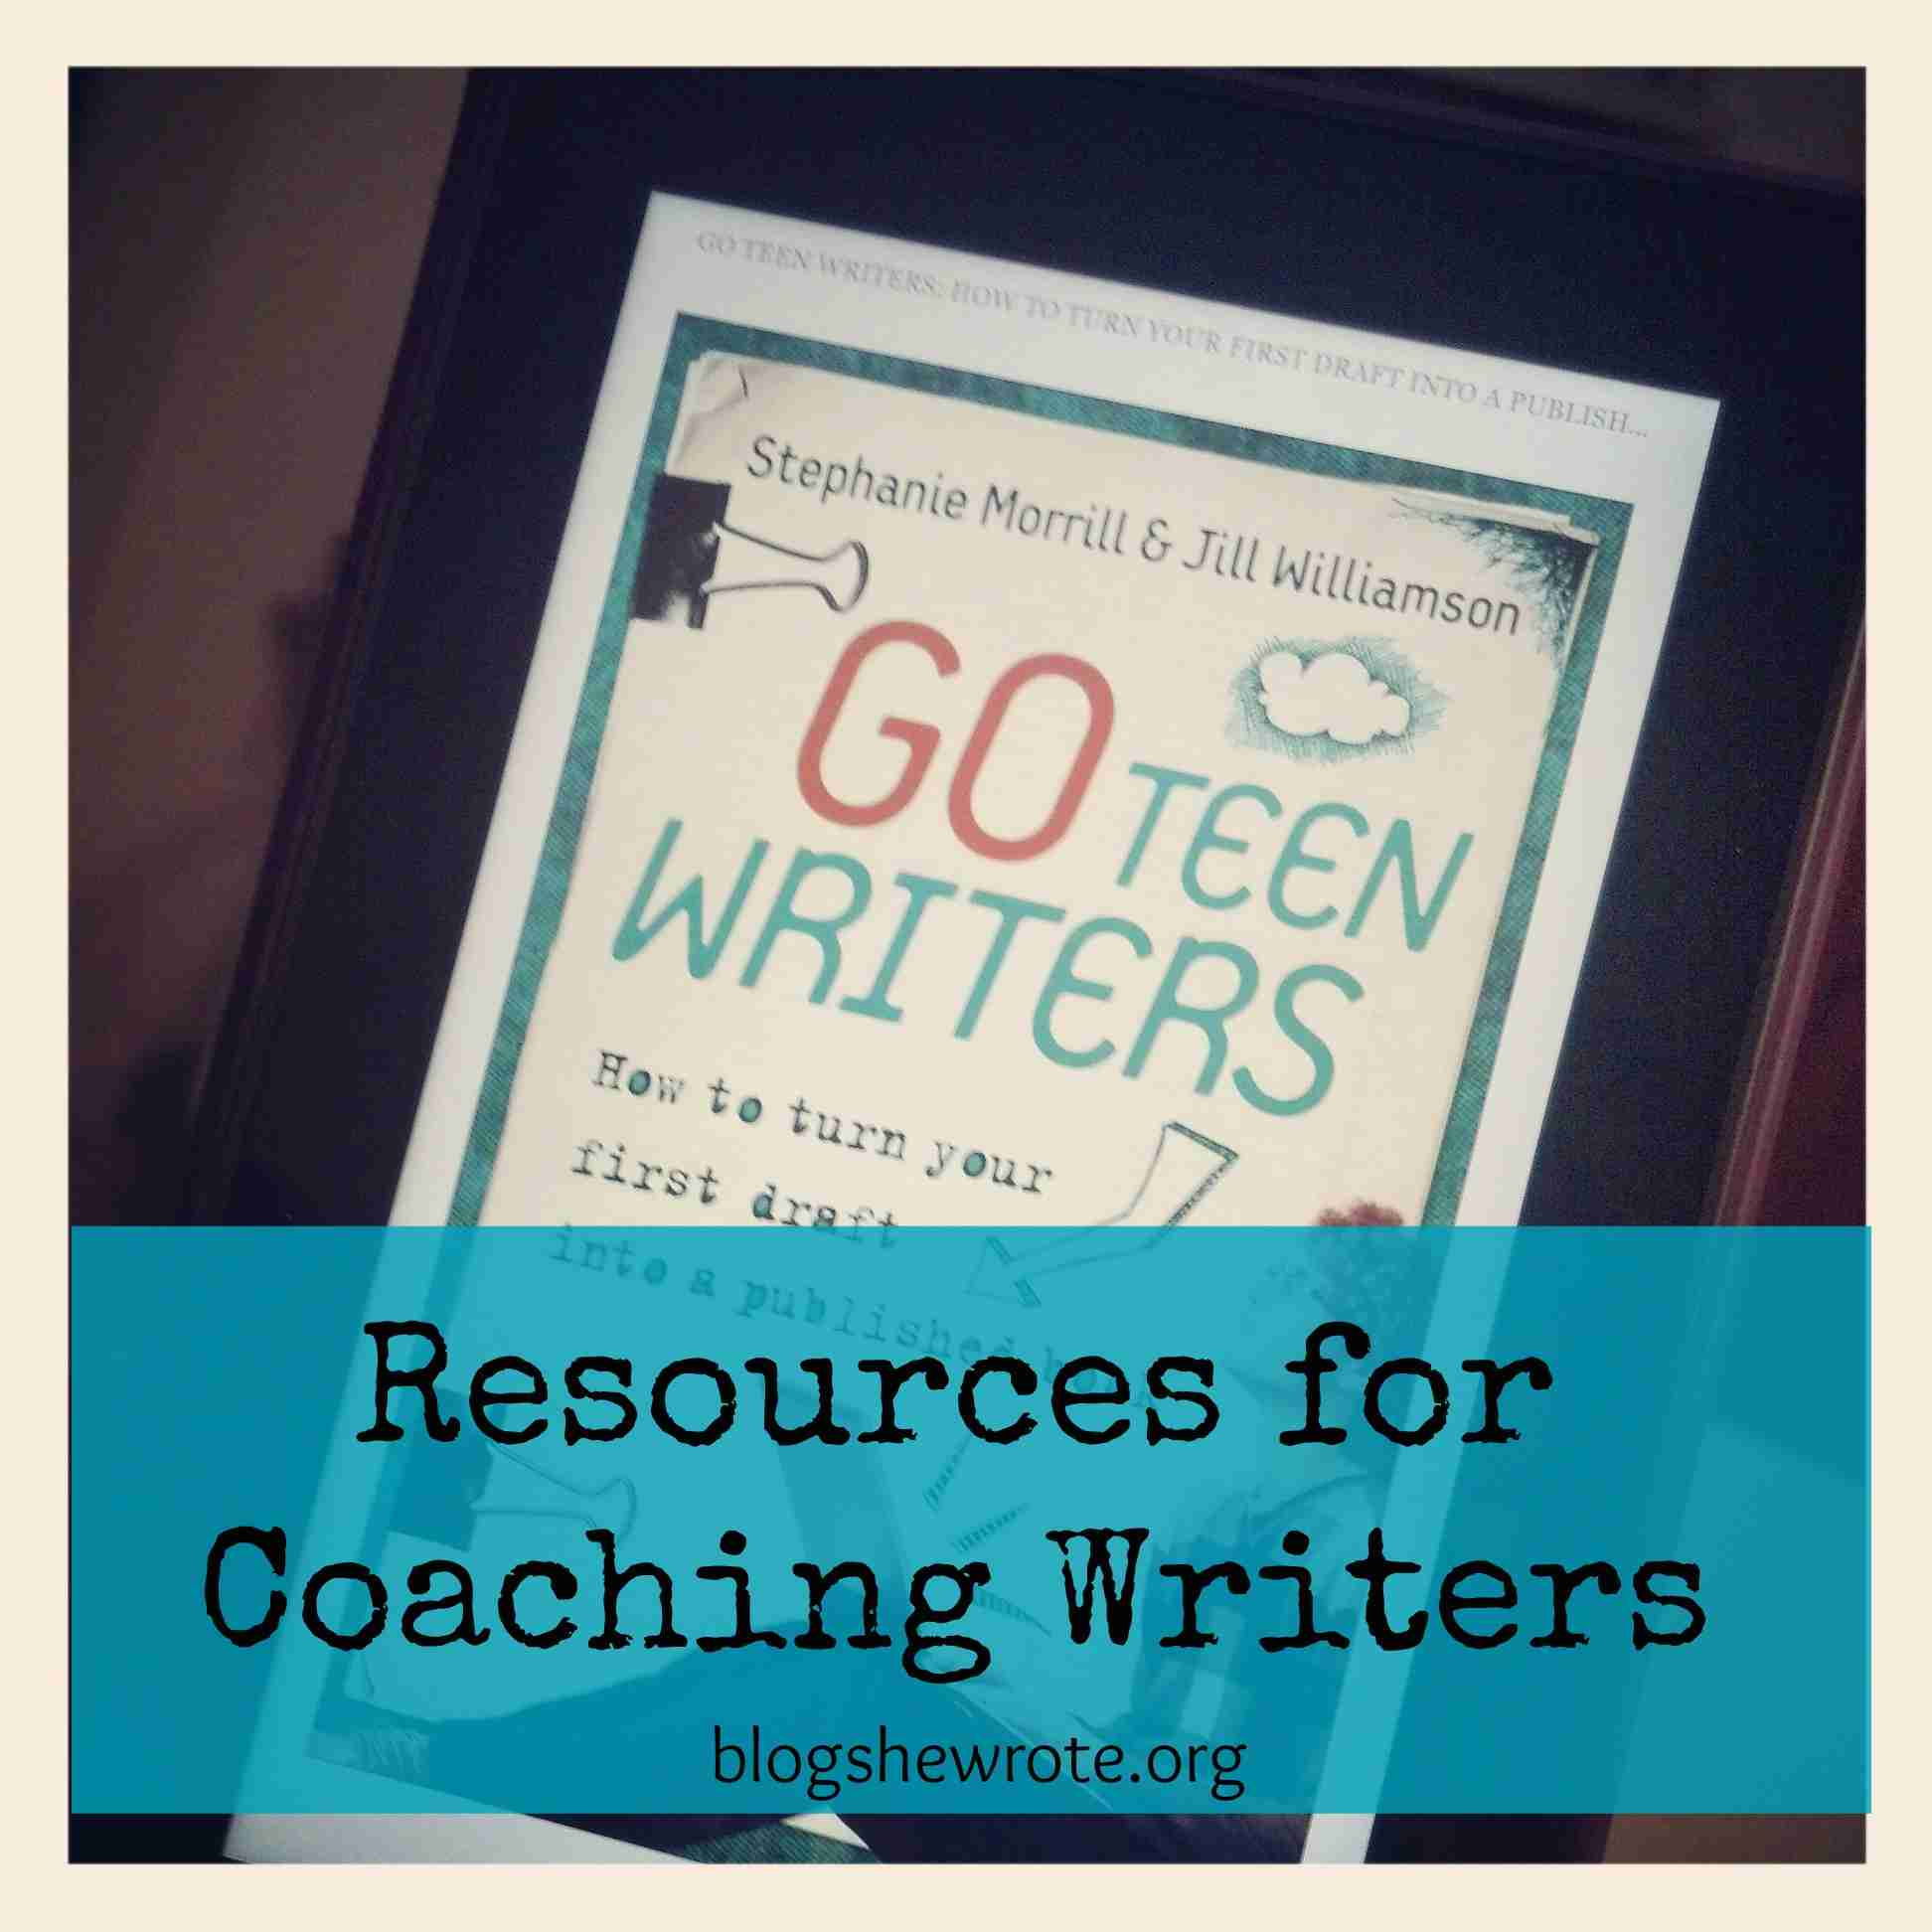 Blog, She Wrote: Resources for Coaching Writers